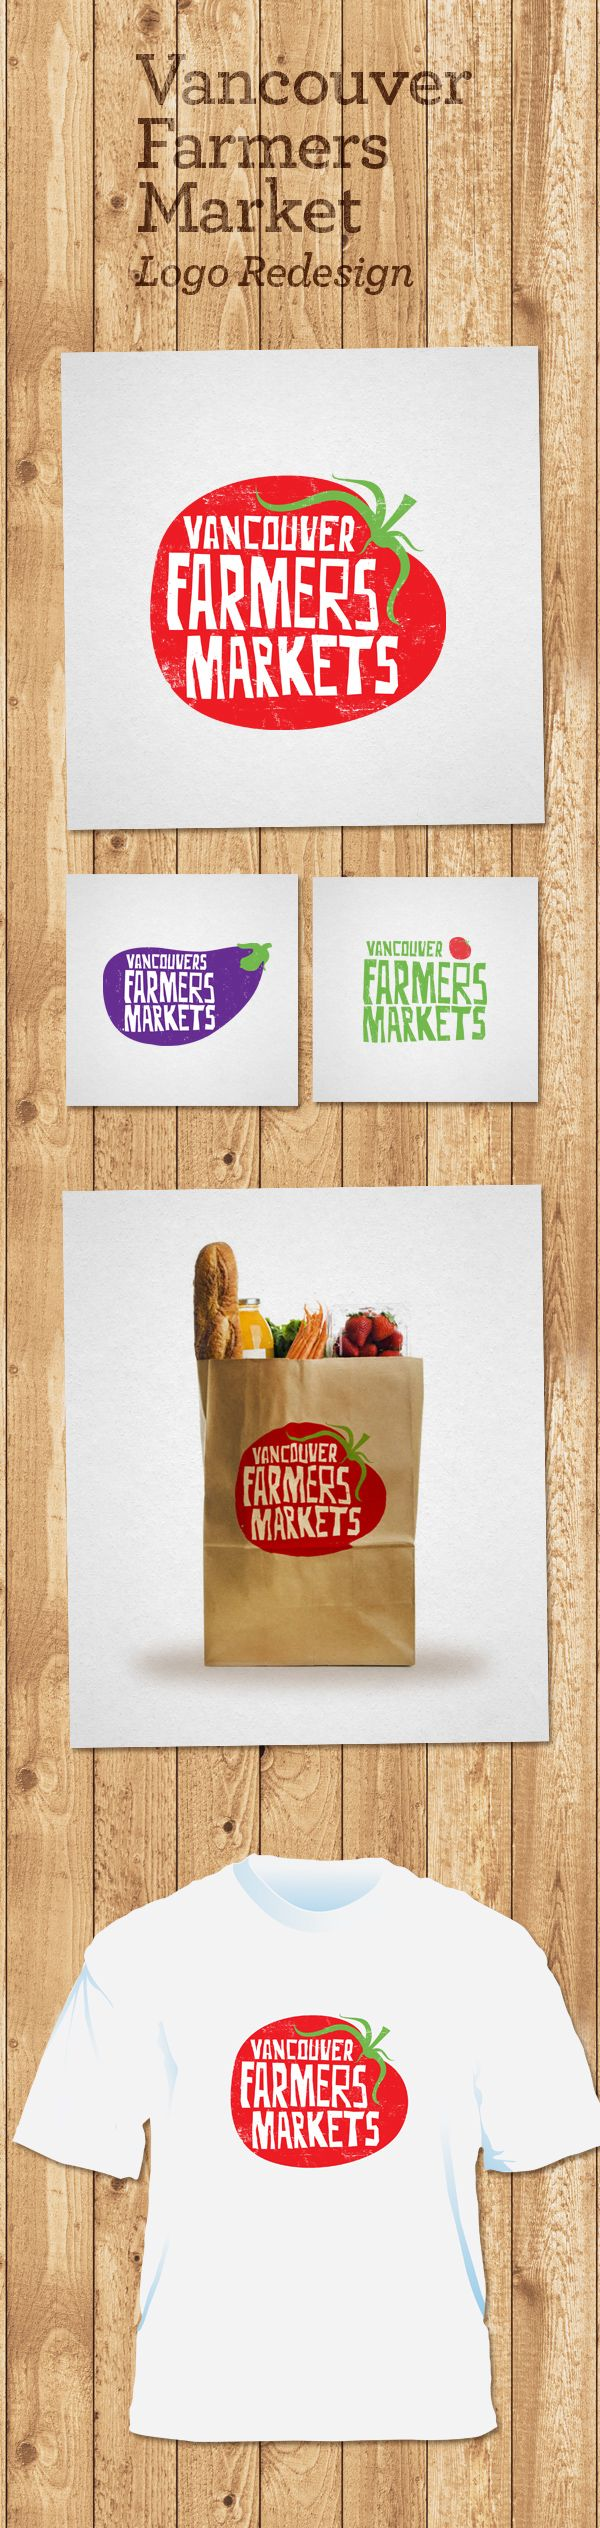 Vancouver Farmers Markets - logo redesign on Behance.